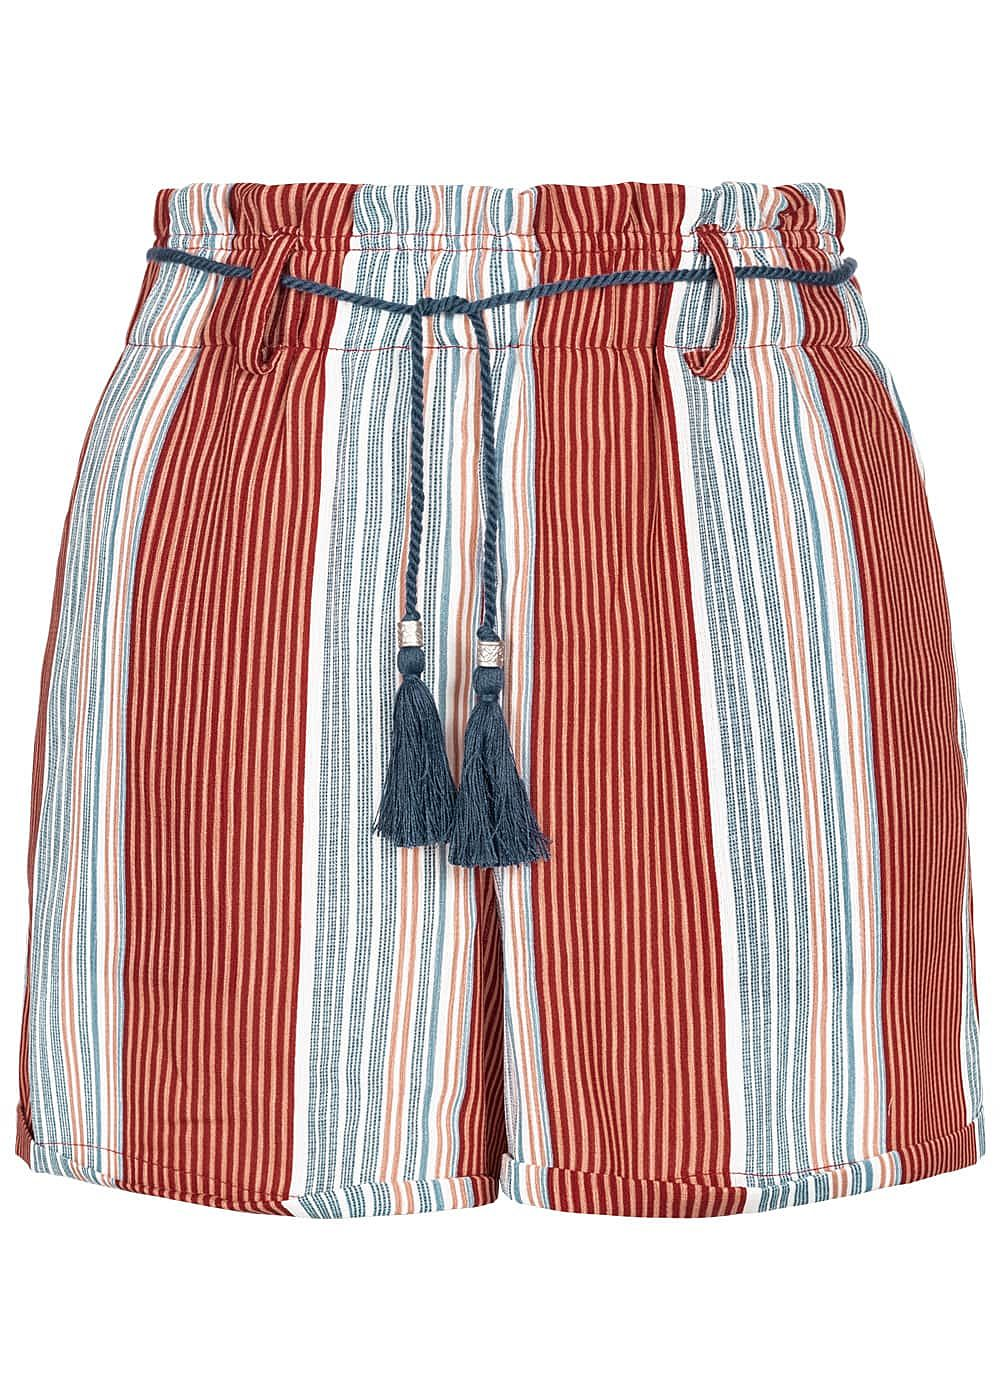 ONLY Damen Striped High-Waist Shorts Belt 2-Pockets calypso coral rot - Art.-Nr.: 19051751